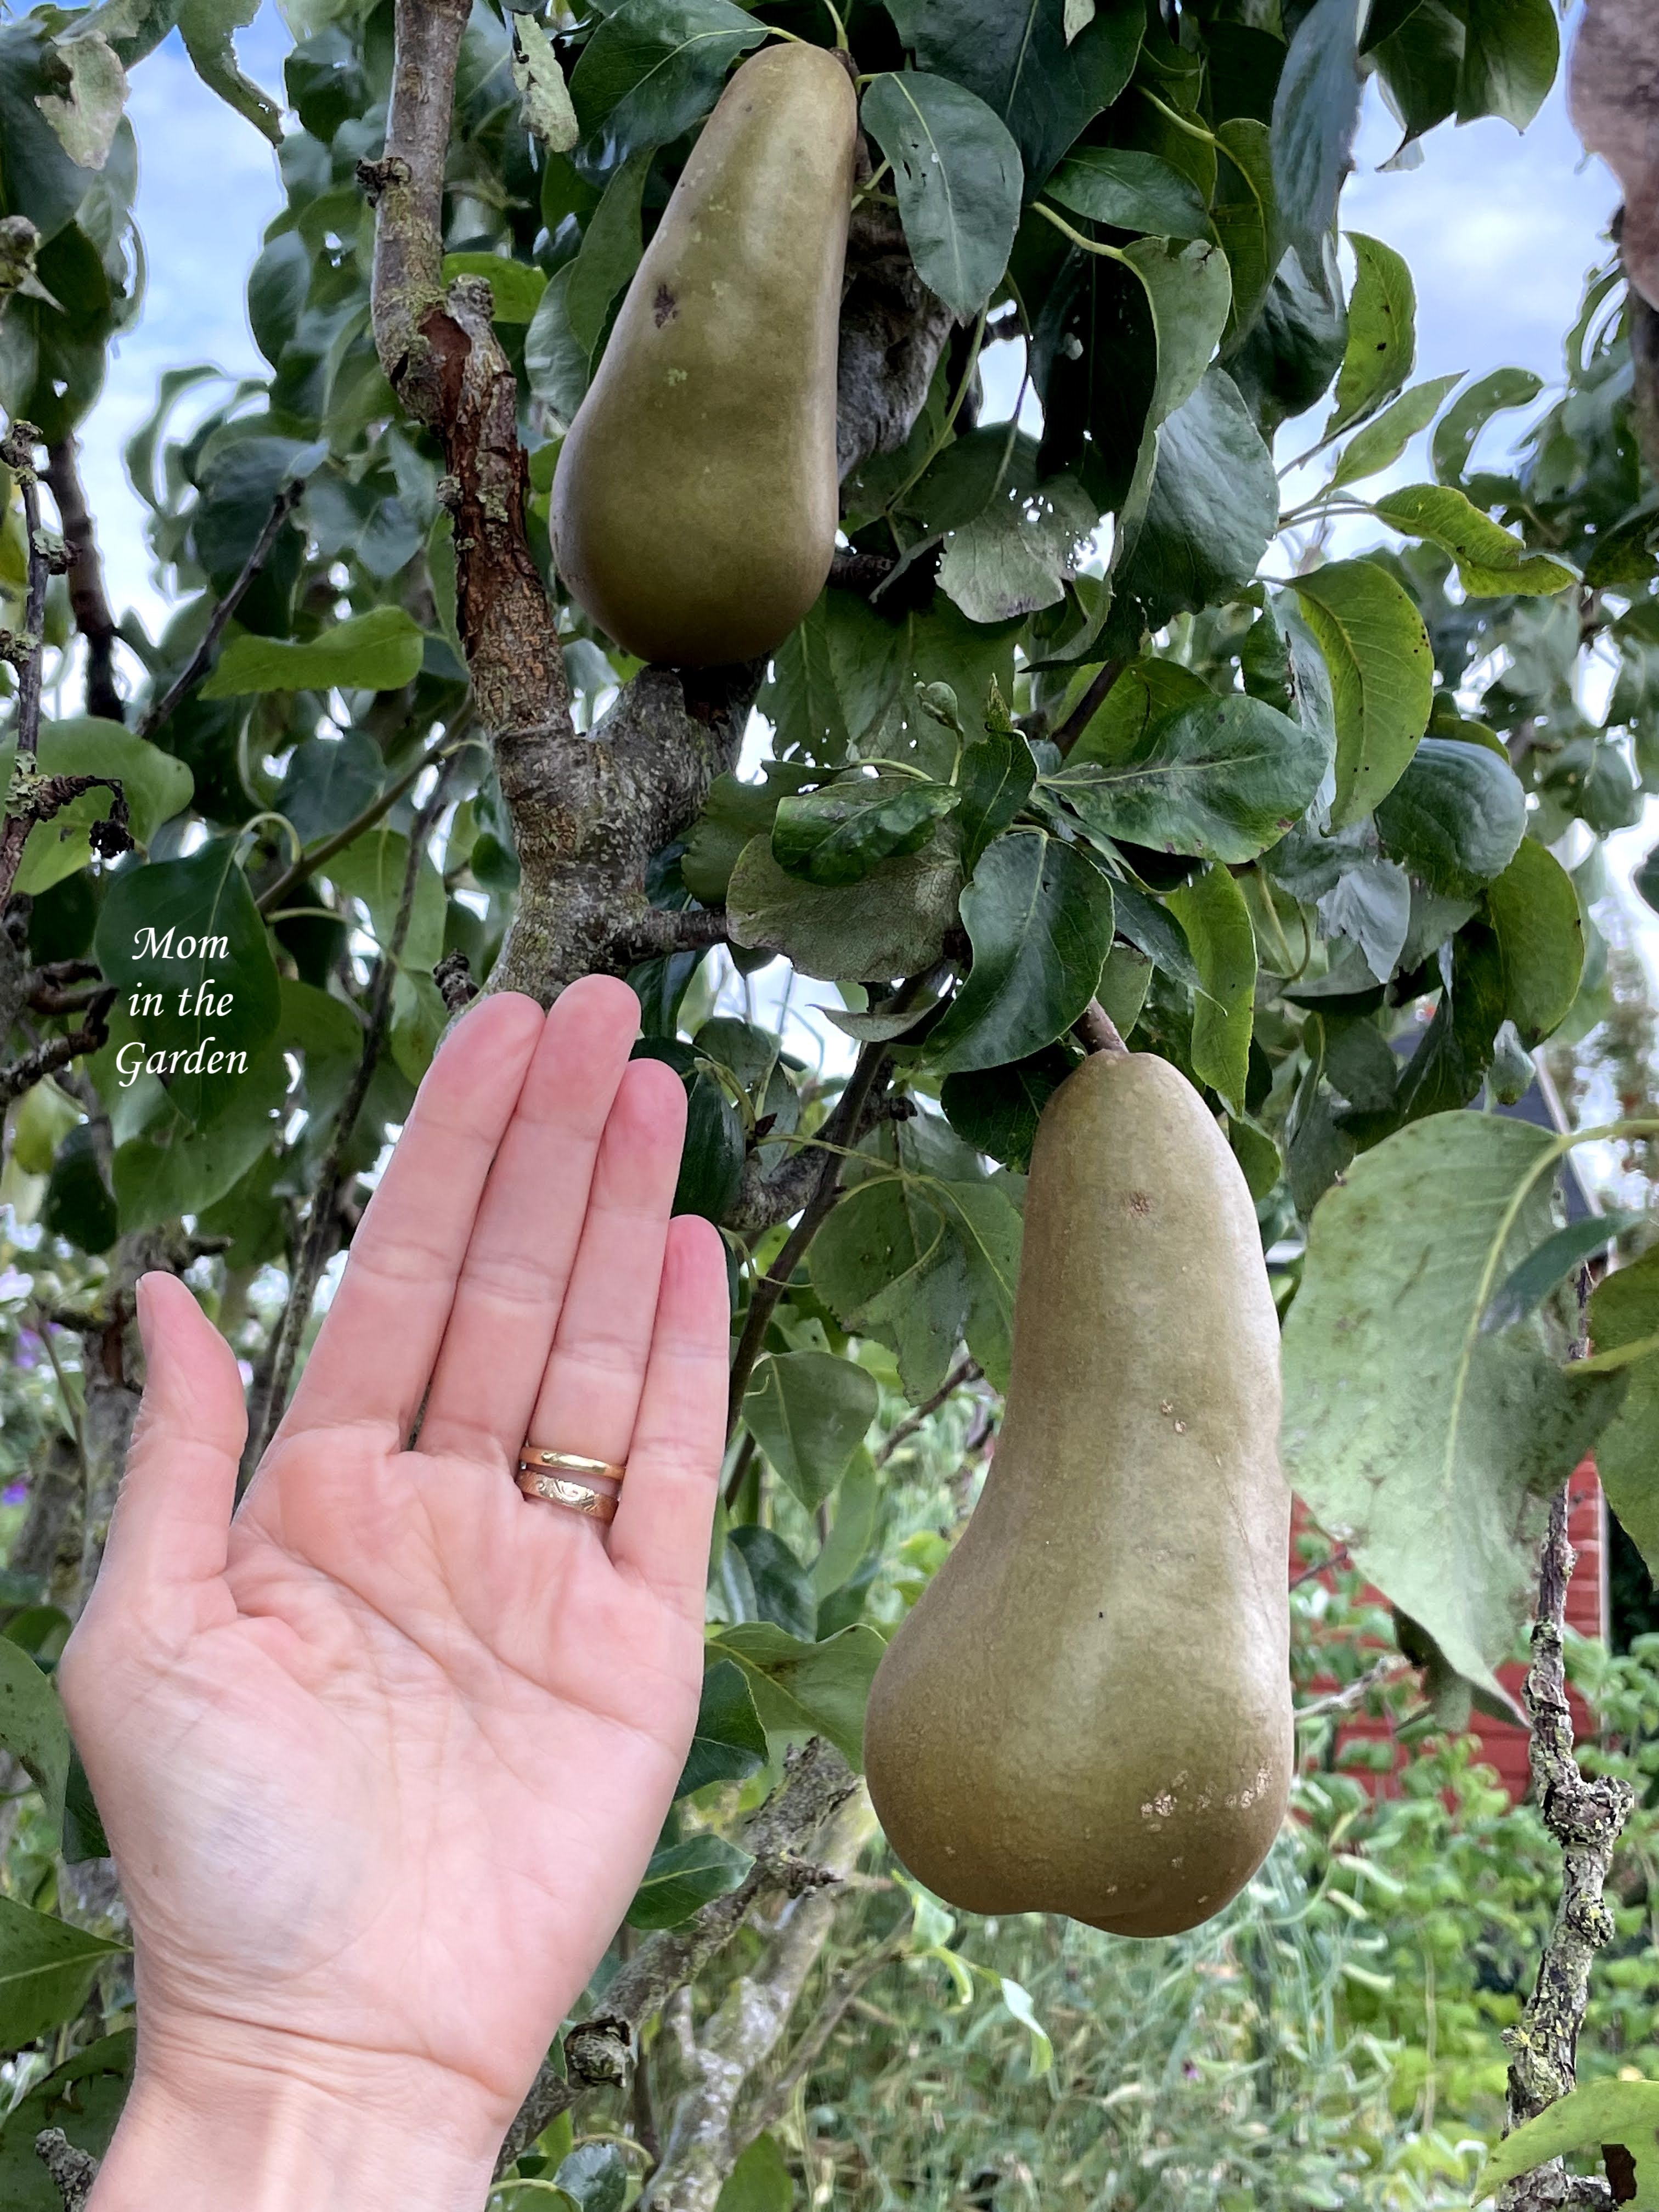 Two pears in tree